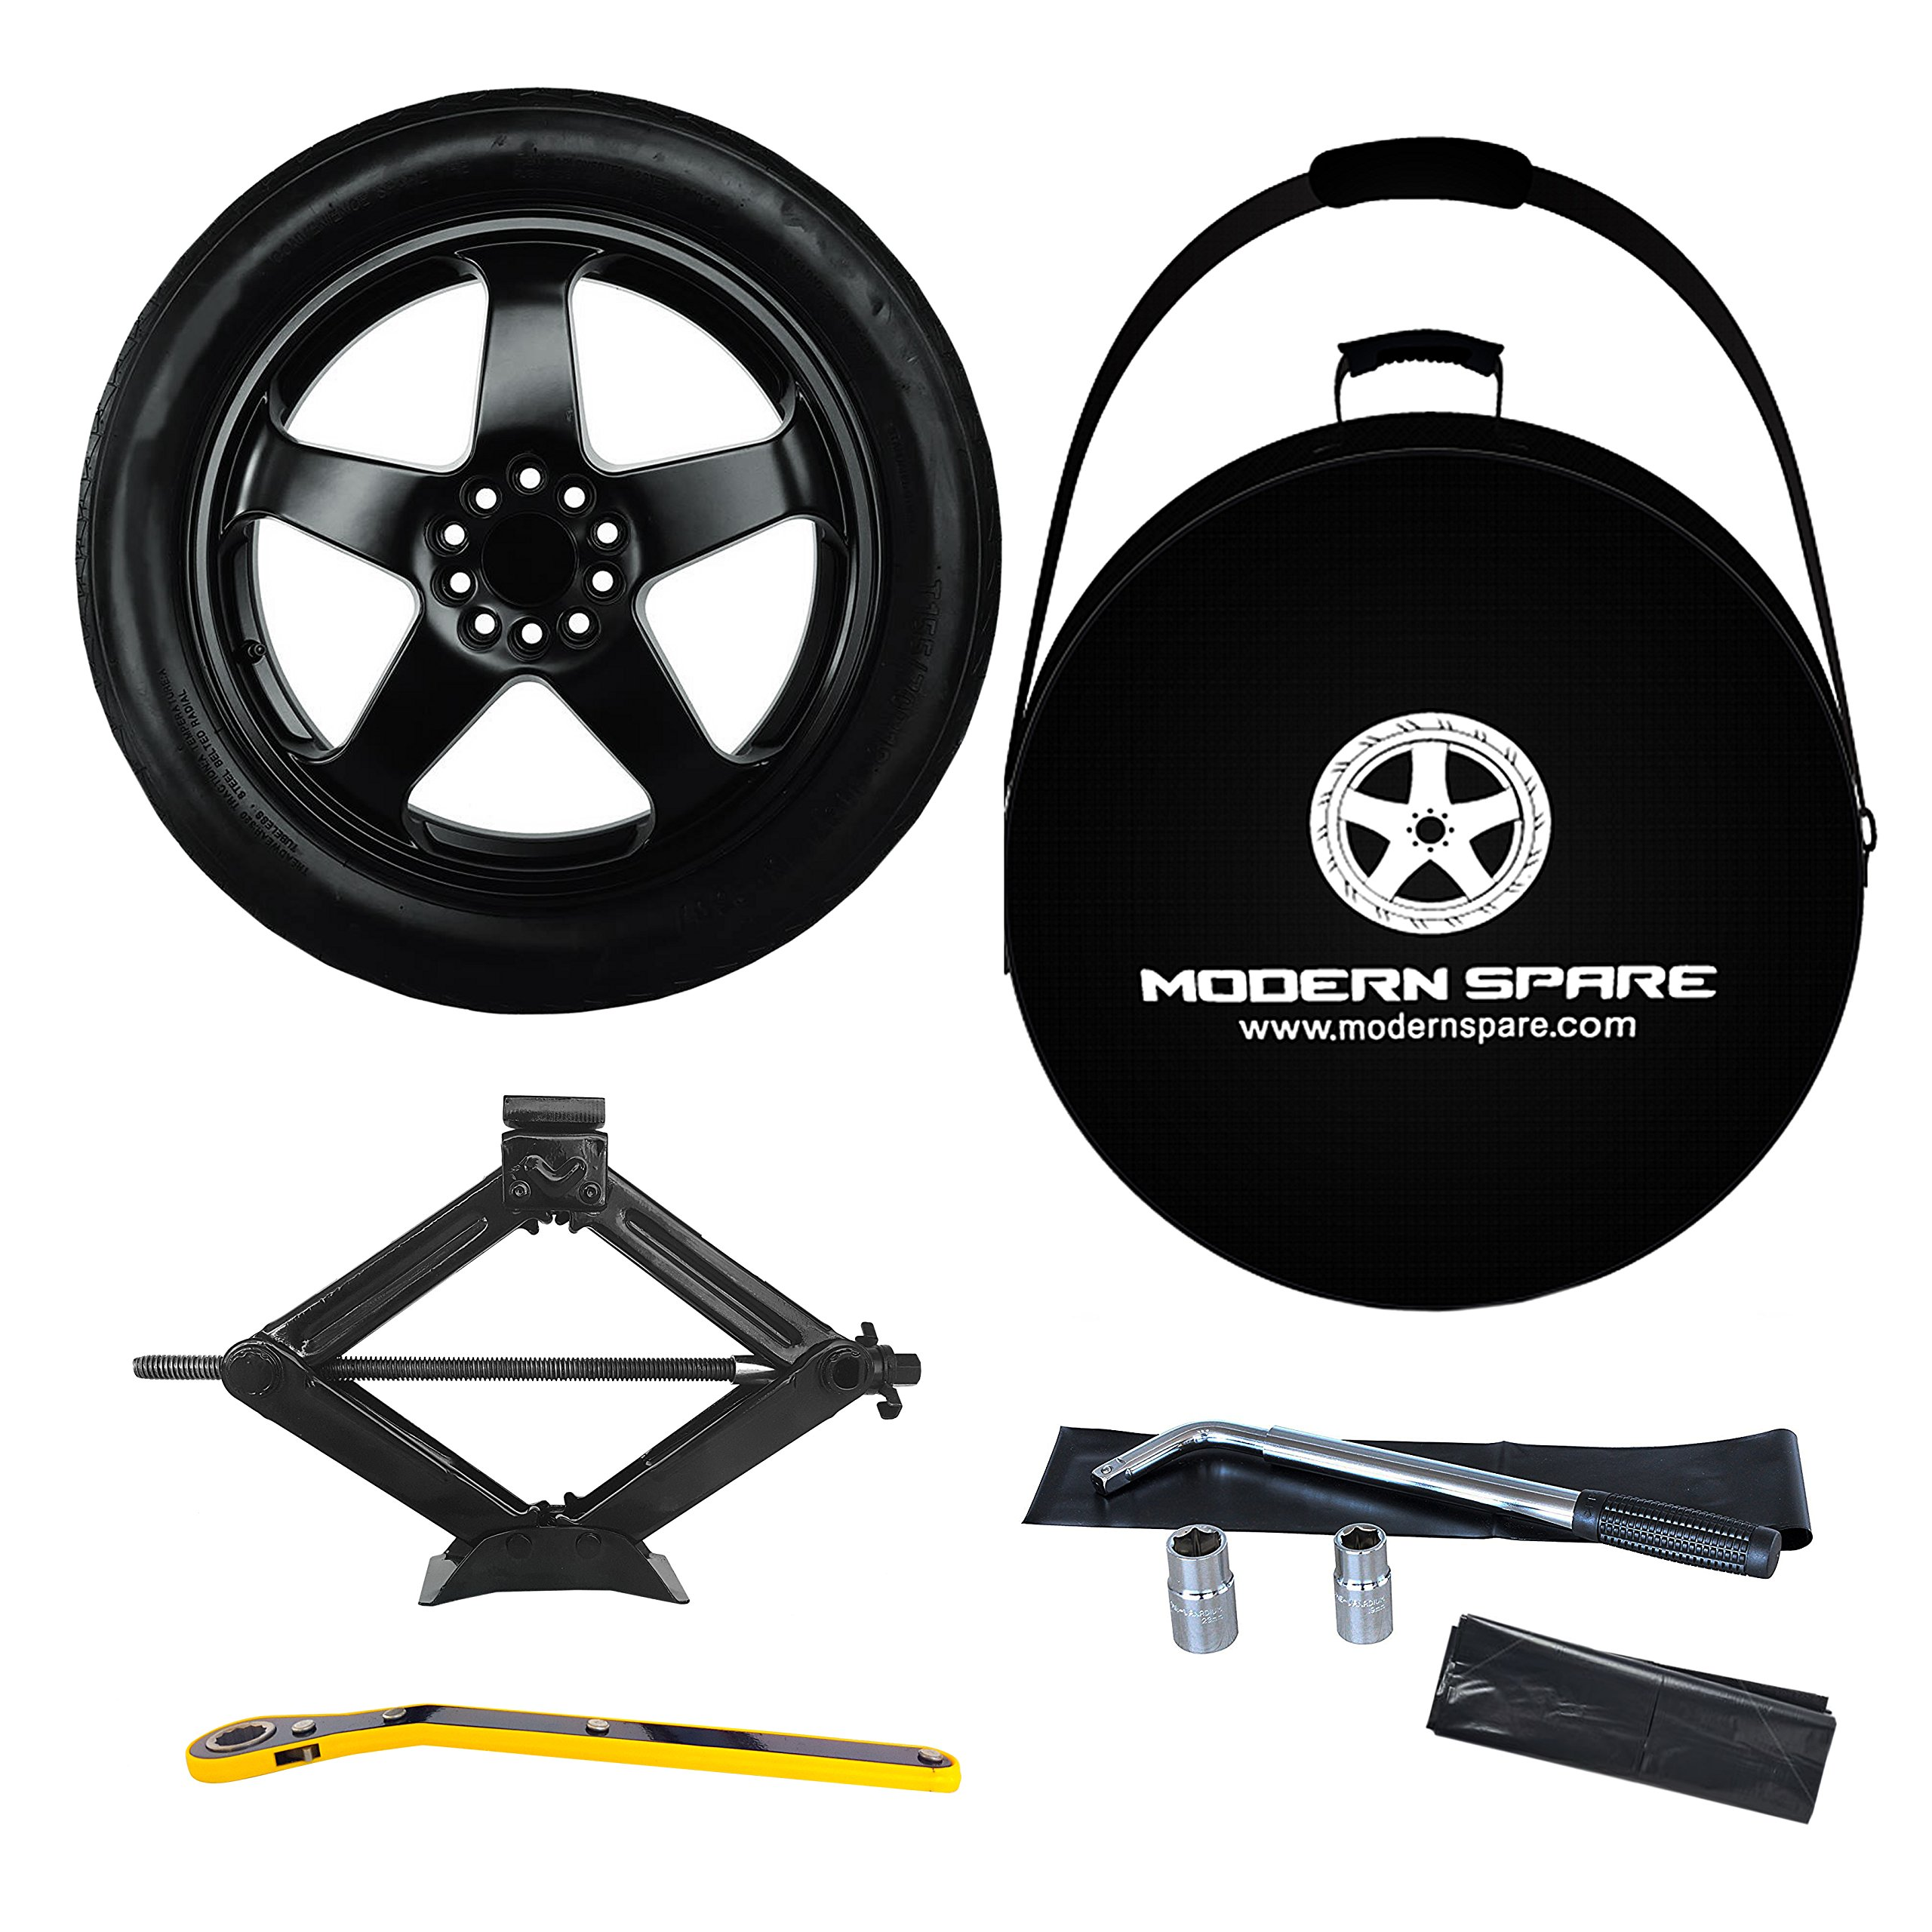 Complete Compact Spare Tire Kit w/ Carrying Case - Fits 2016-2021 Chevrolet Camaro Including ZL1 - Modern Spare